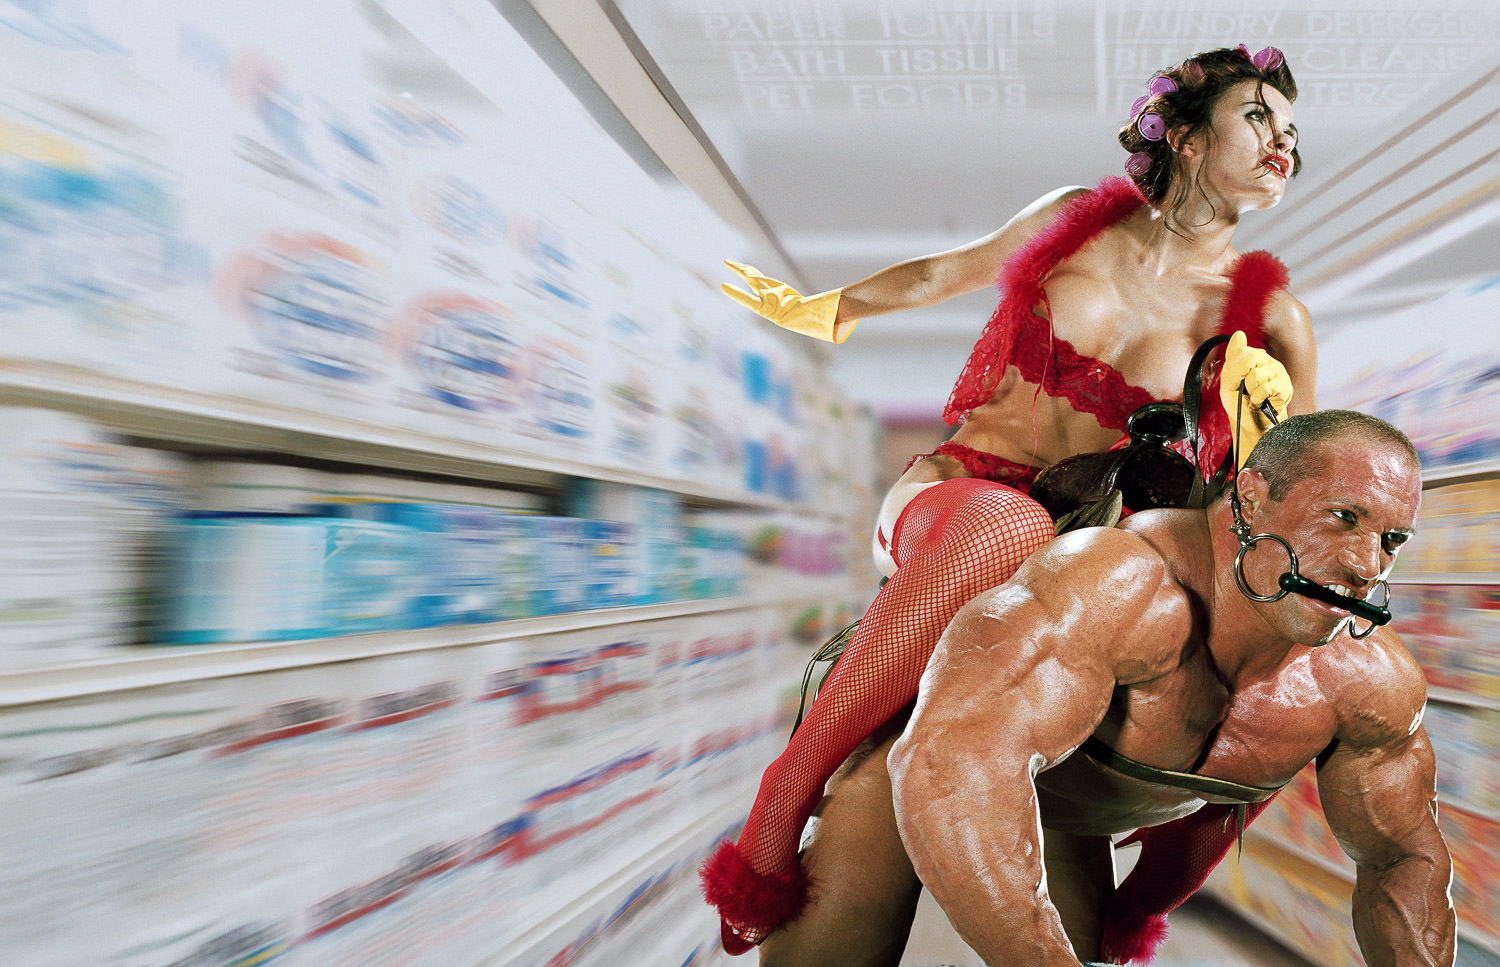 Housewife Riding Bodybuilder in a Supermarket